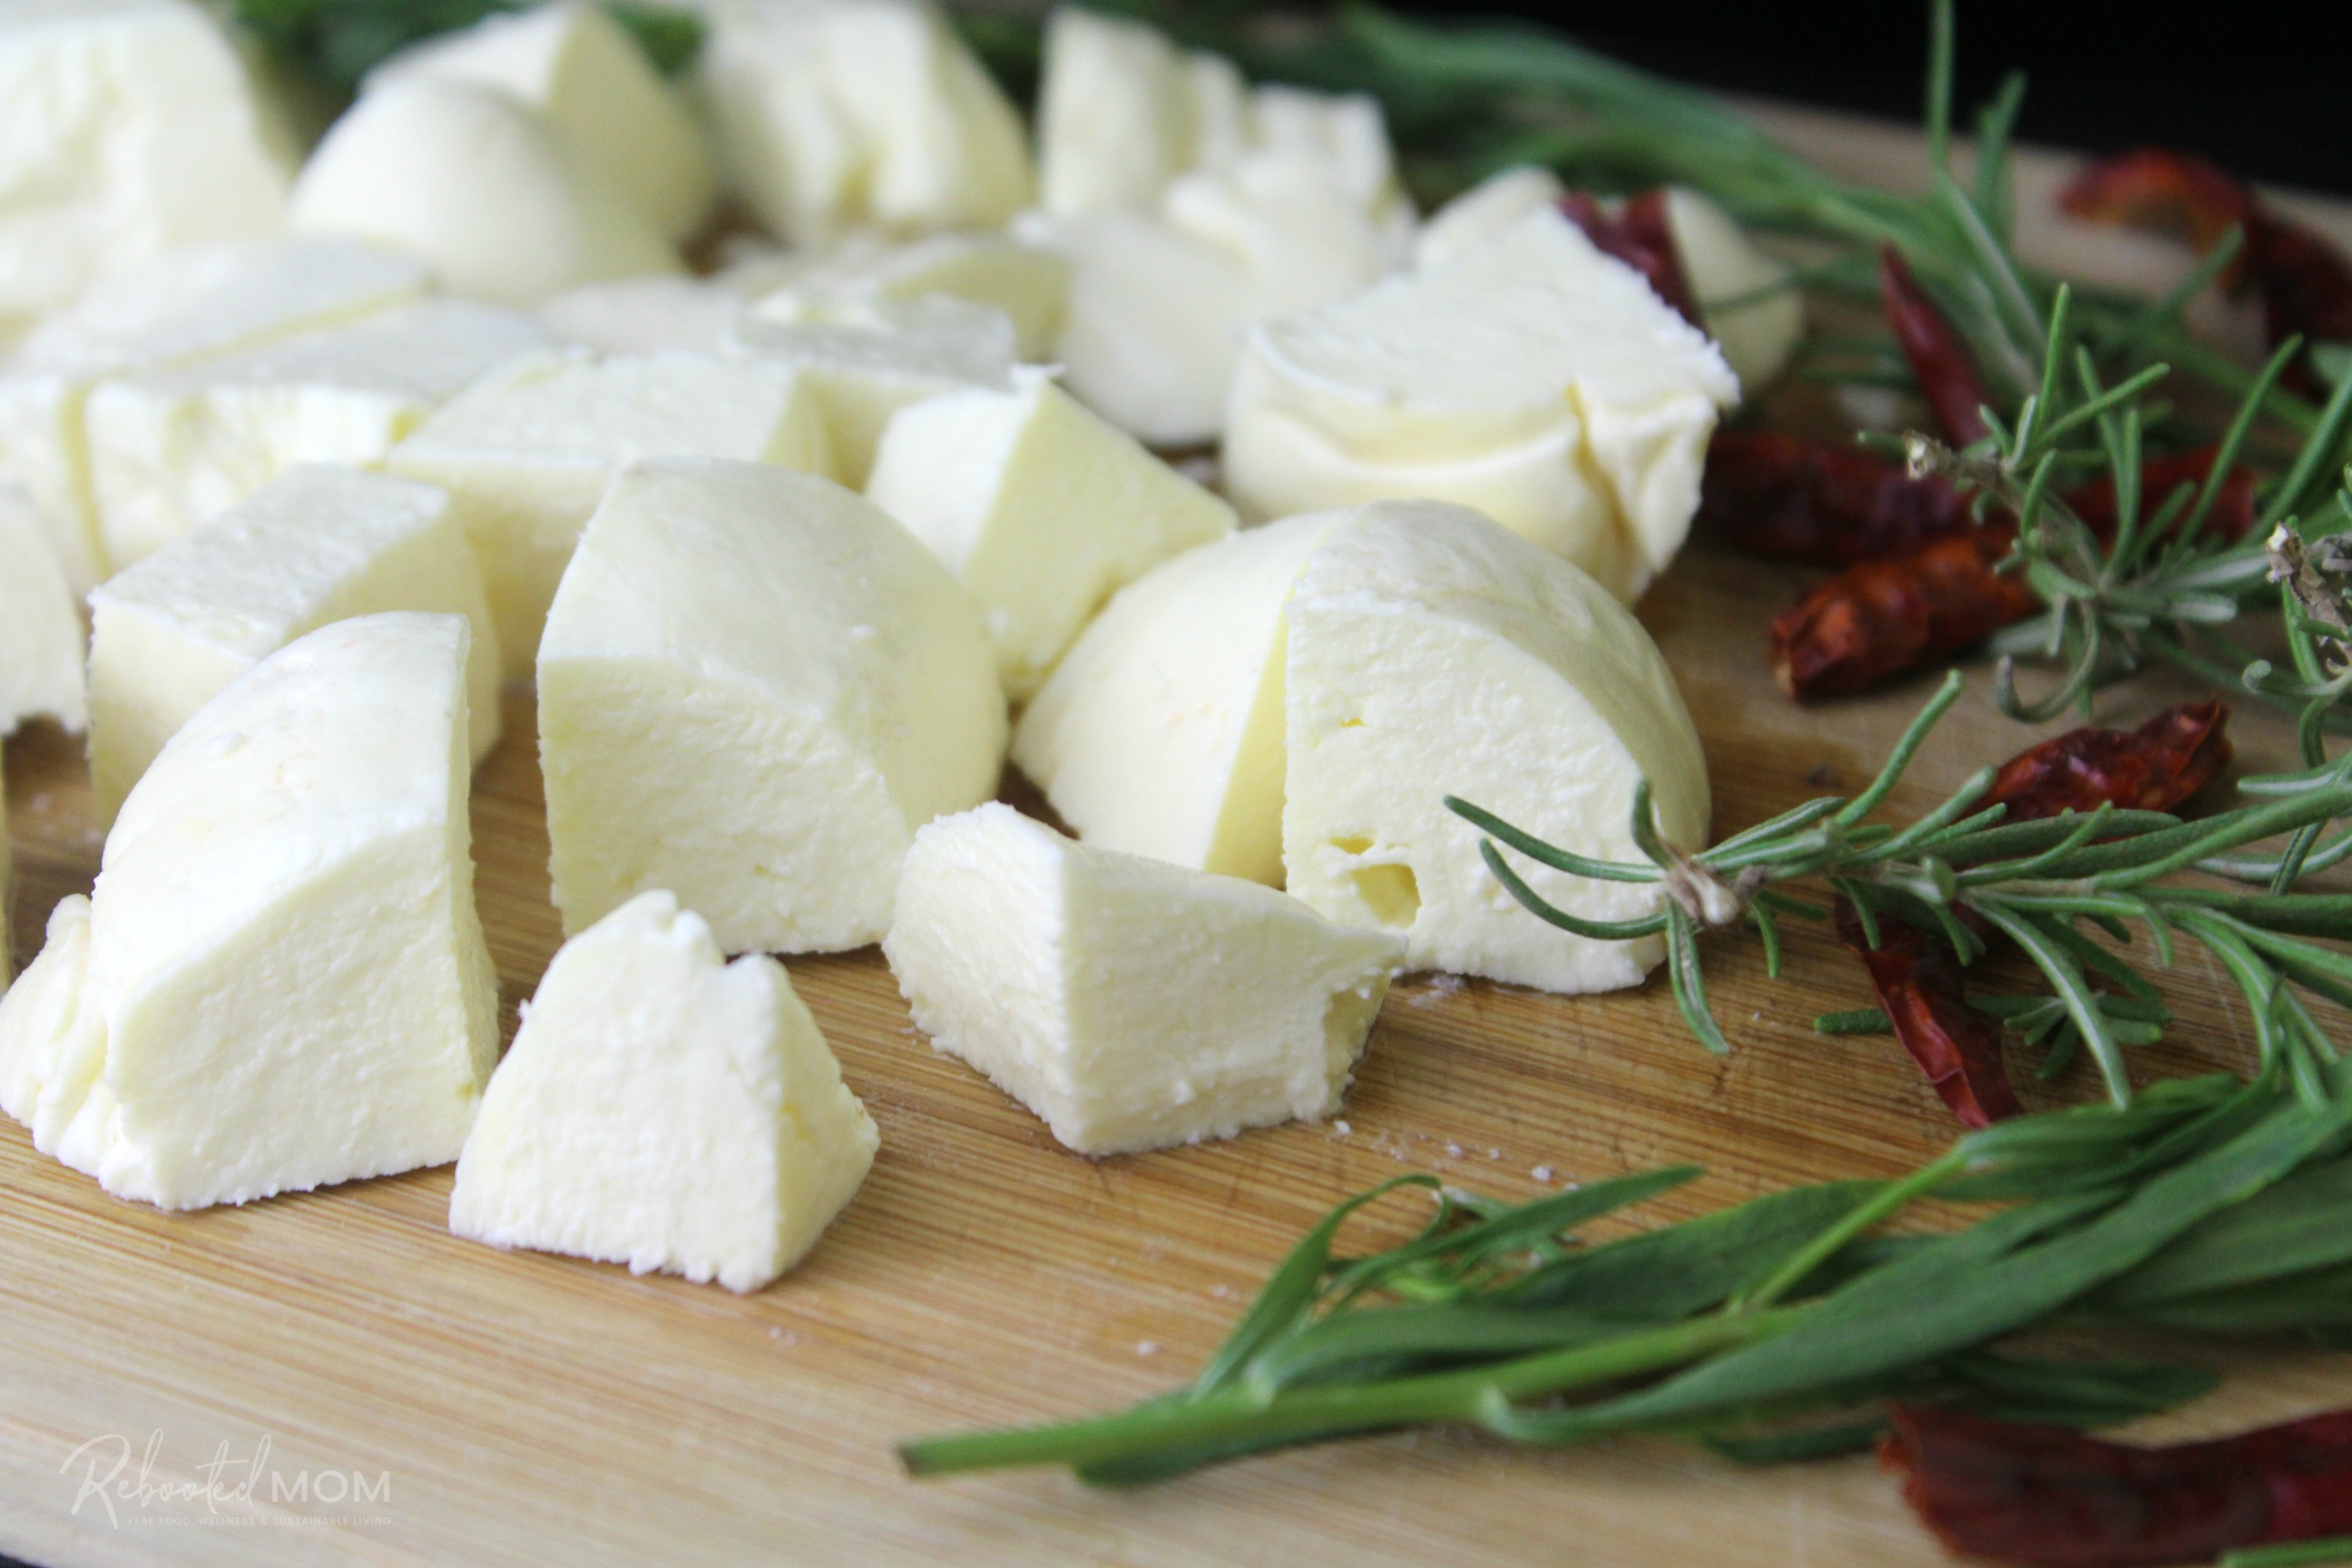 Homemade Feta Cheese on a Cutting Board with Fresh Herbs